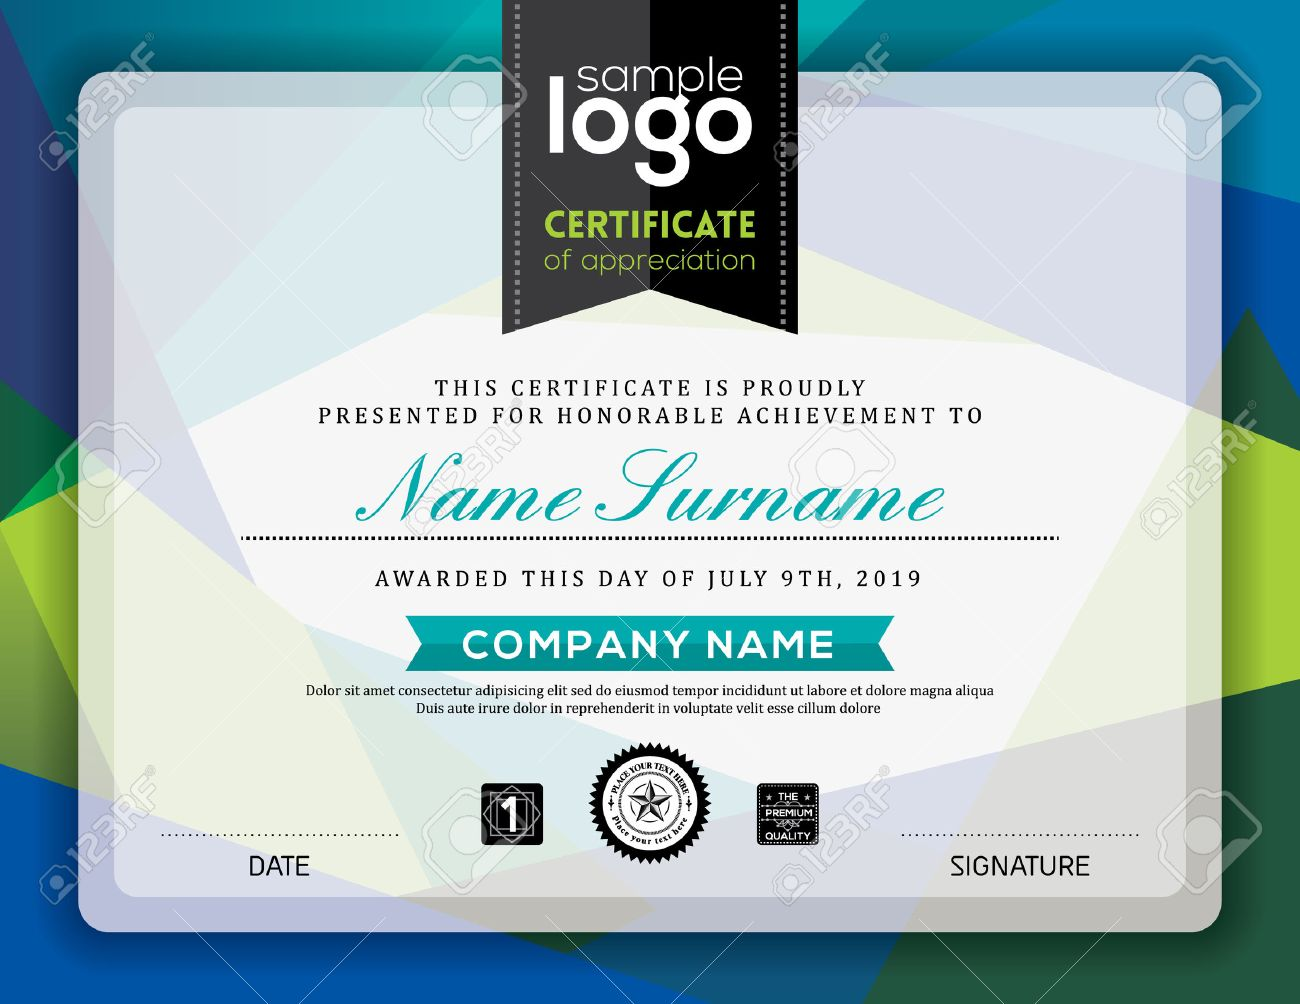 Modern certificate blue and green triangle shape background frame design template - 54416944